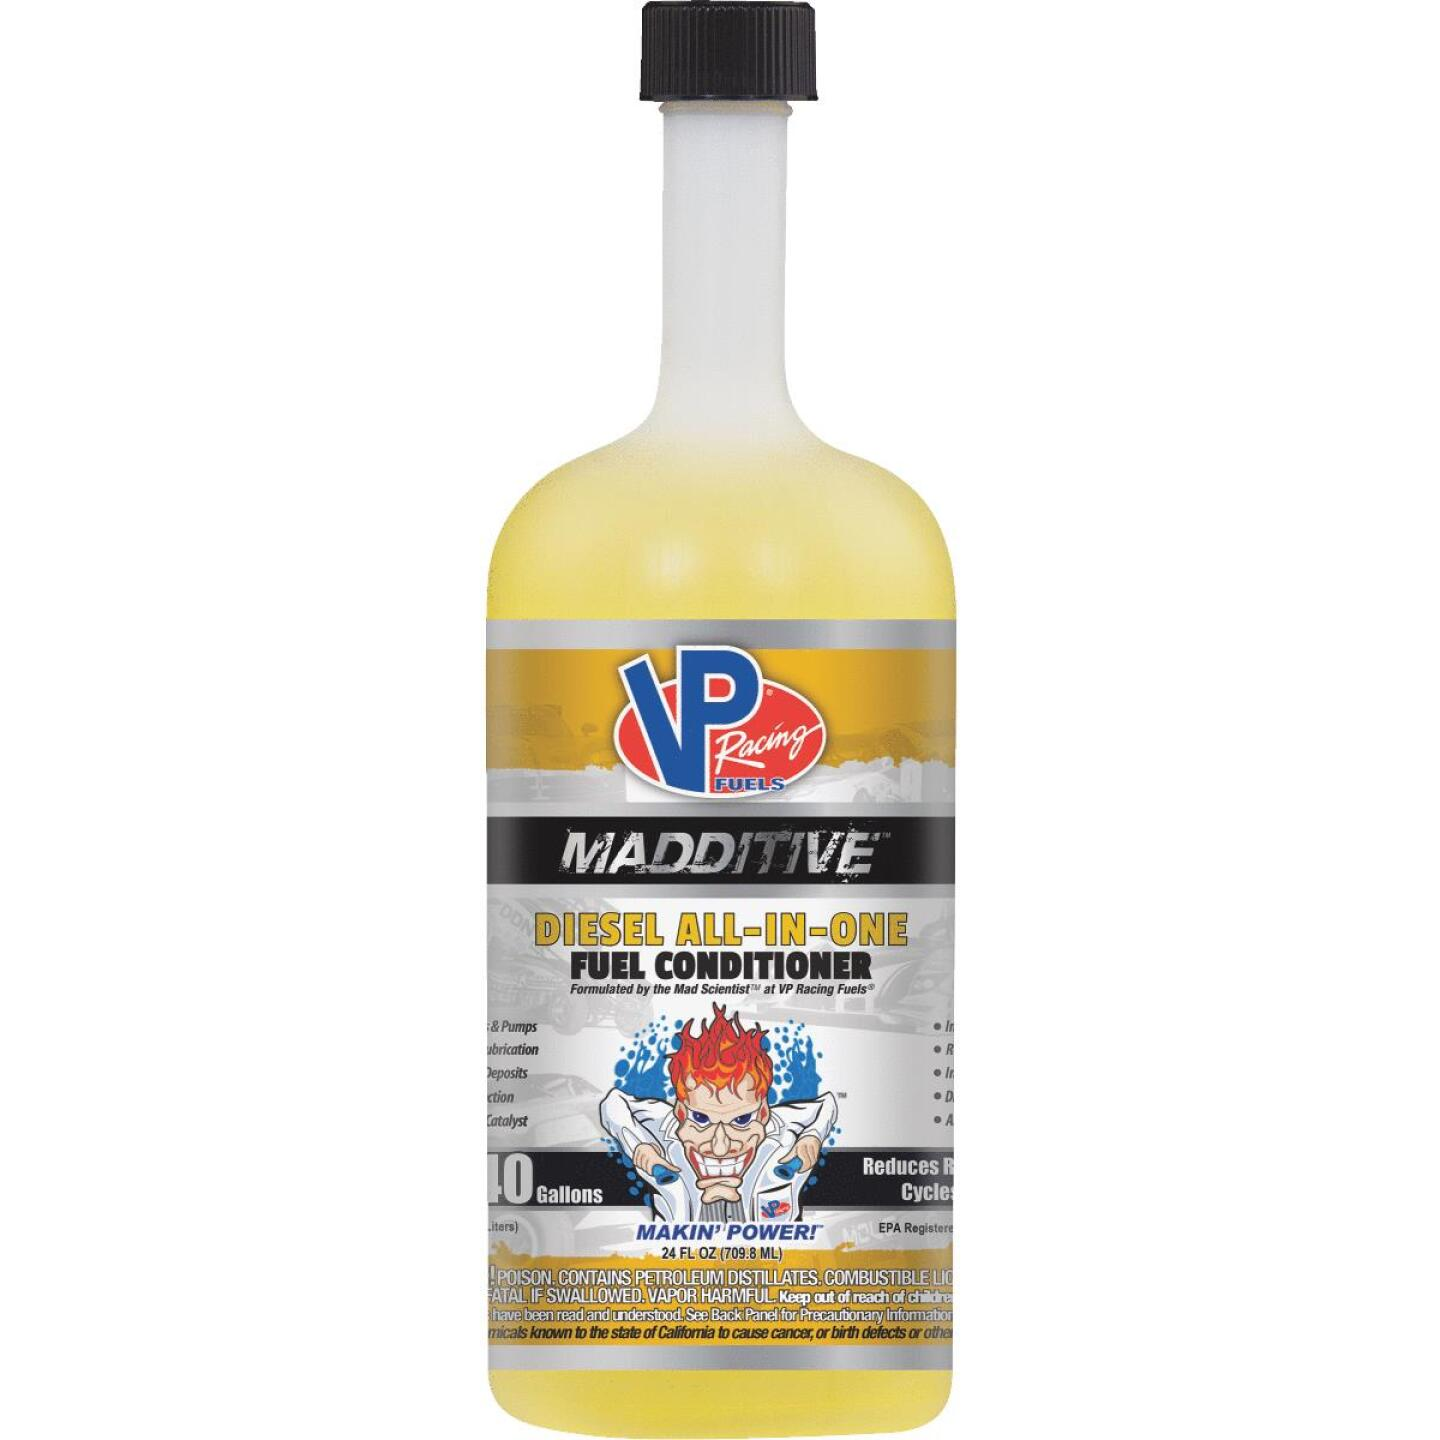 VP Racing Fuels MADDITIVE 24 Fl. Oz. Diesel All-In-One Gas Treatment Image 1